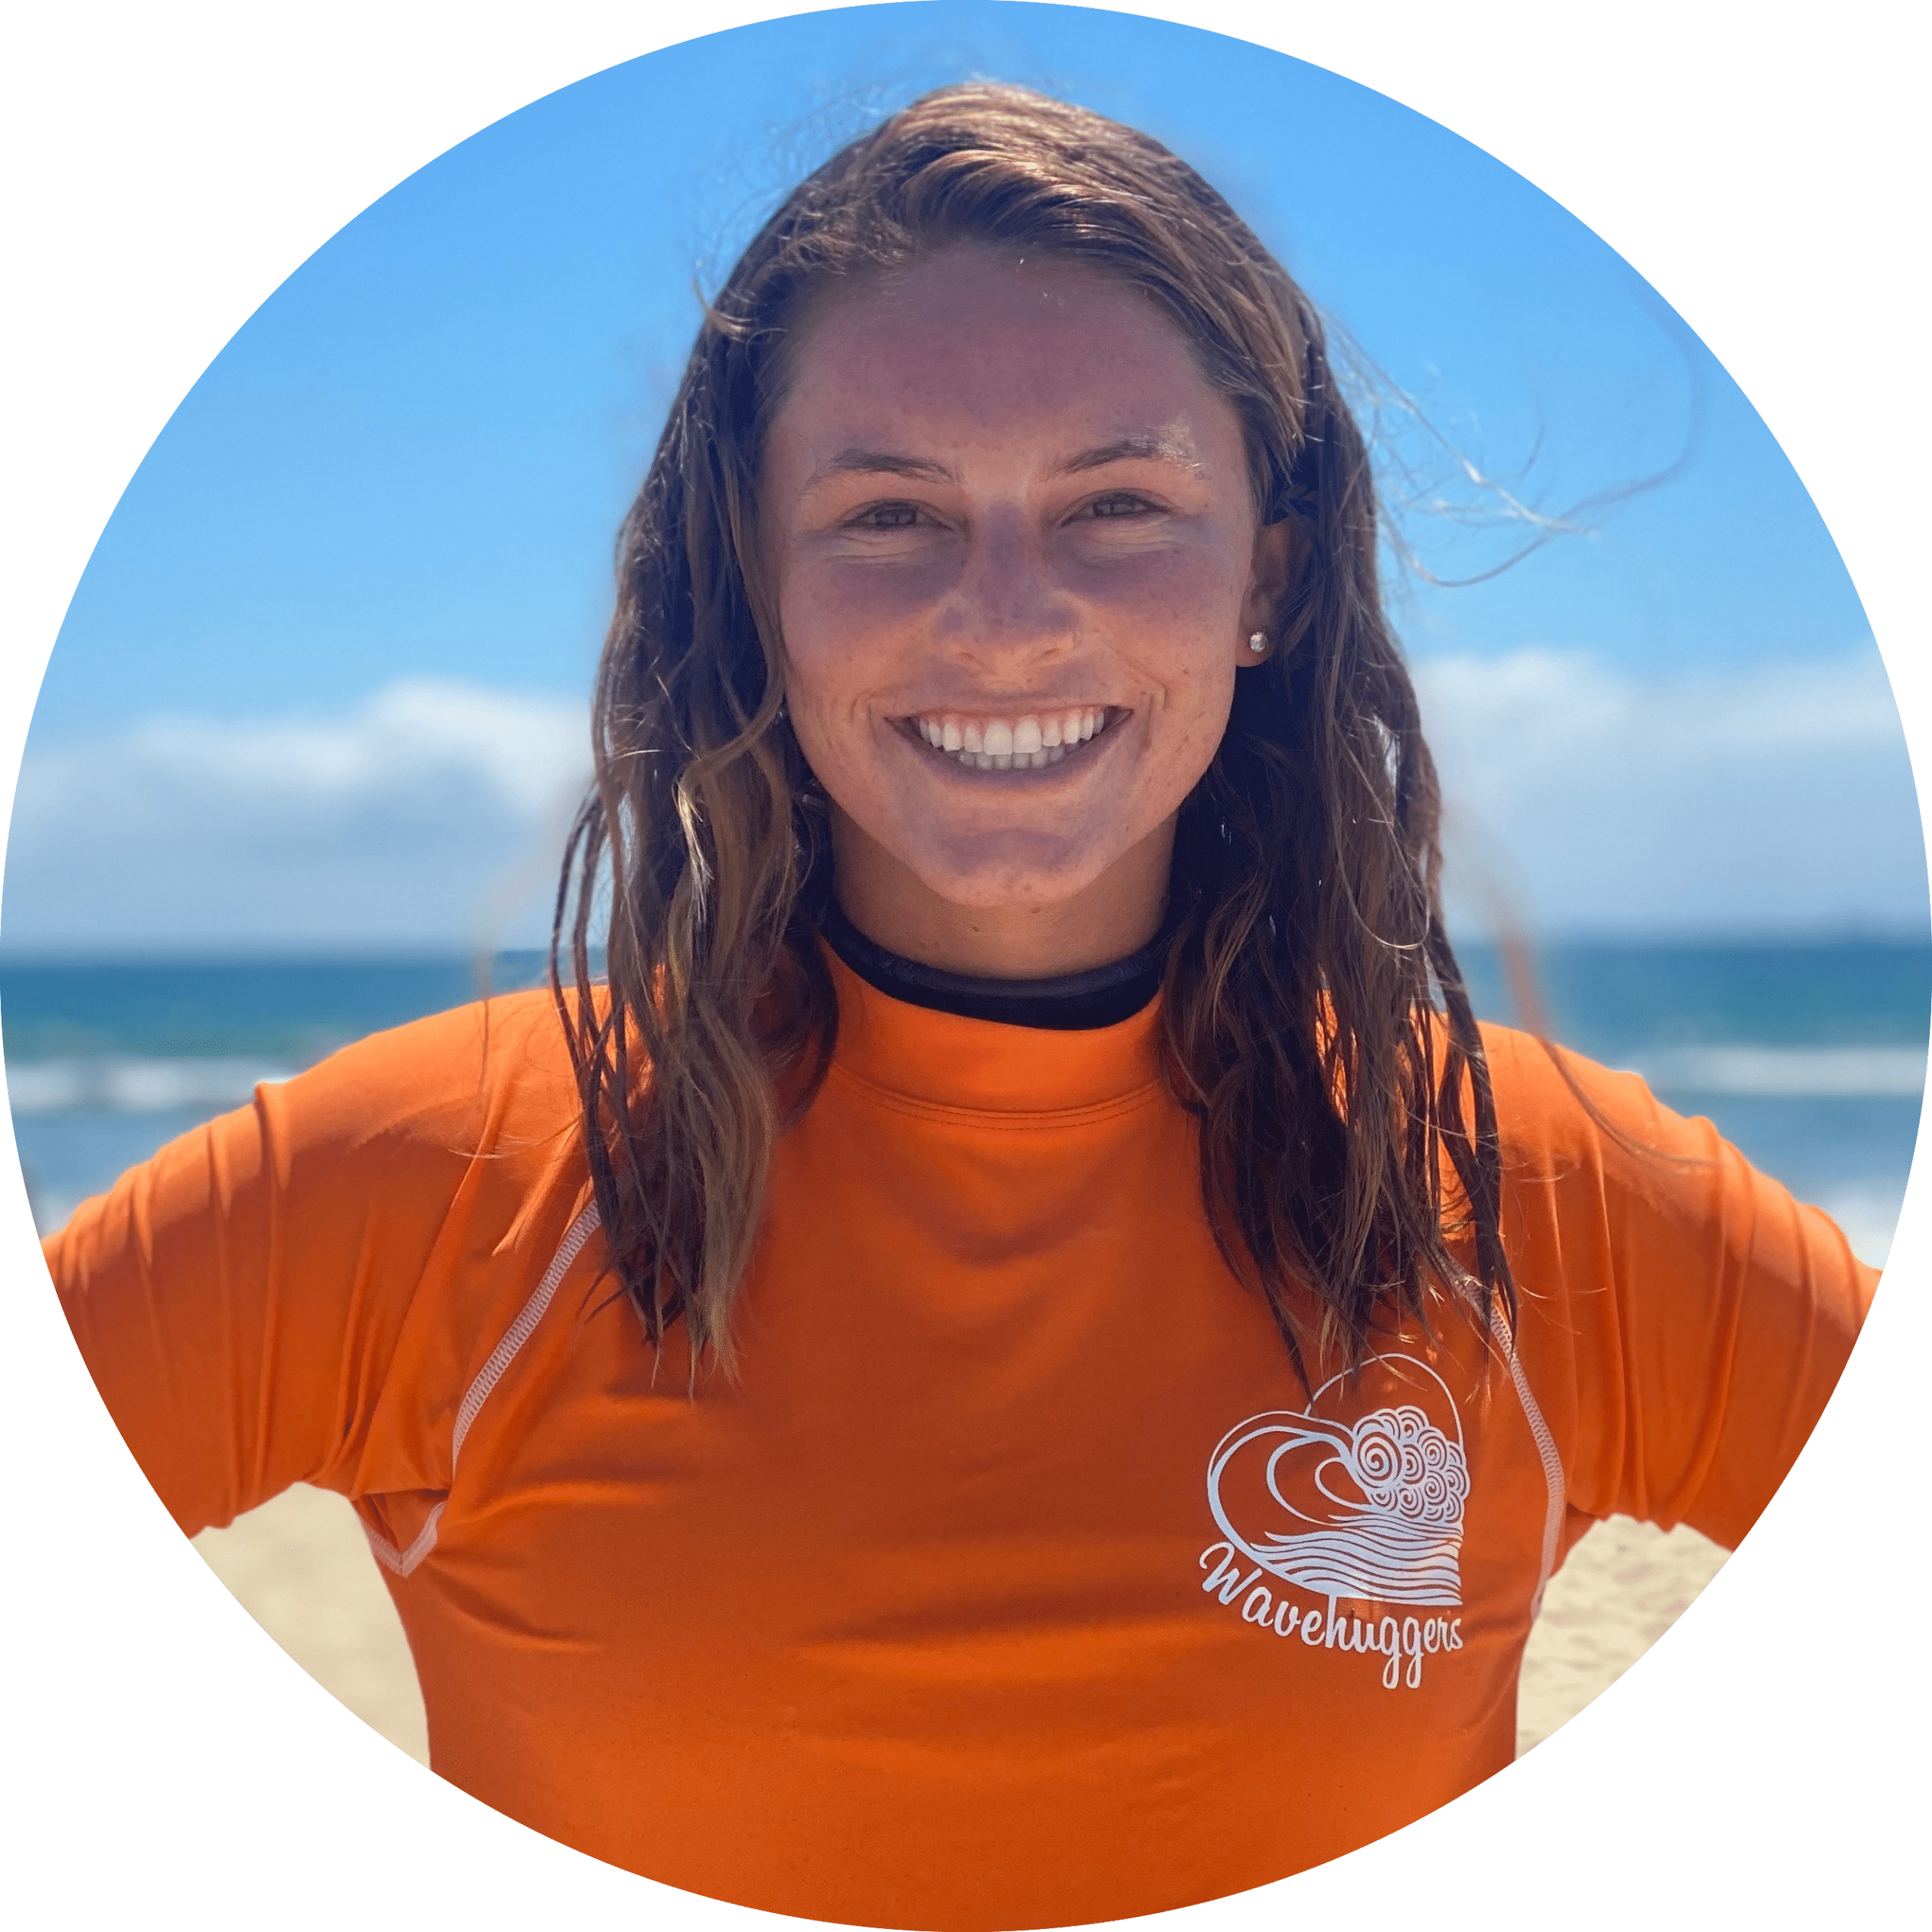 Damie, a young female surf camp counselor at wavehuggers huntington beach camp smiles in front of the the ocean